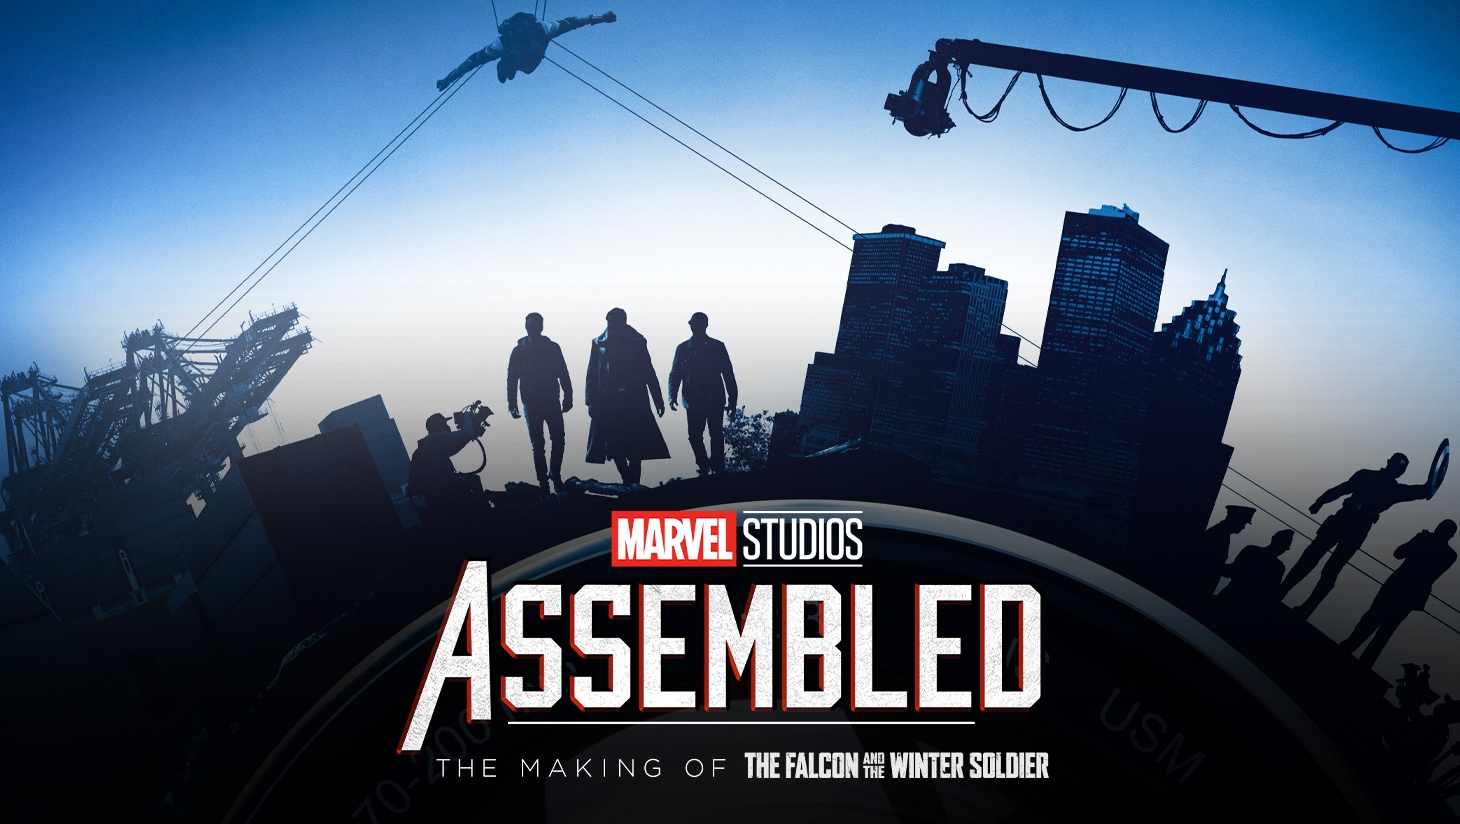 Marvel Studios Assembled: The Making of The Falcon and The Winter Soldier keyart